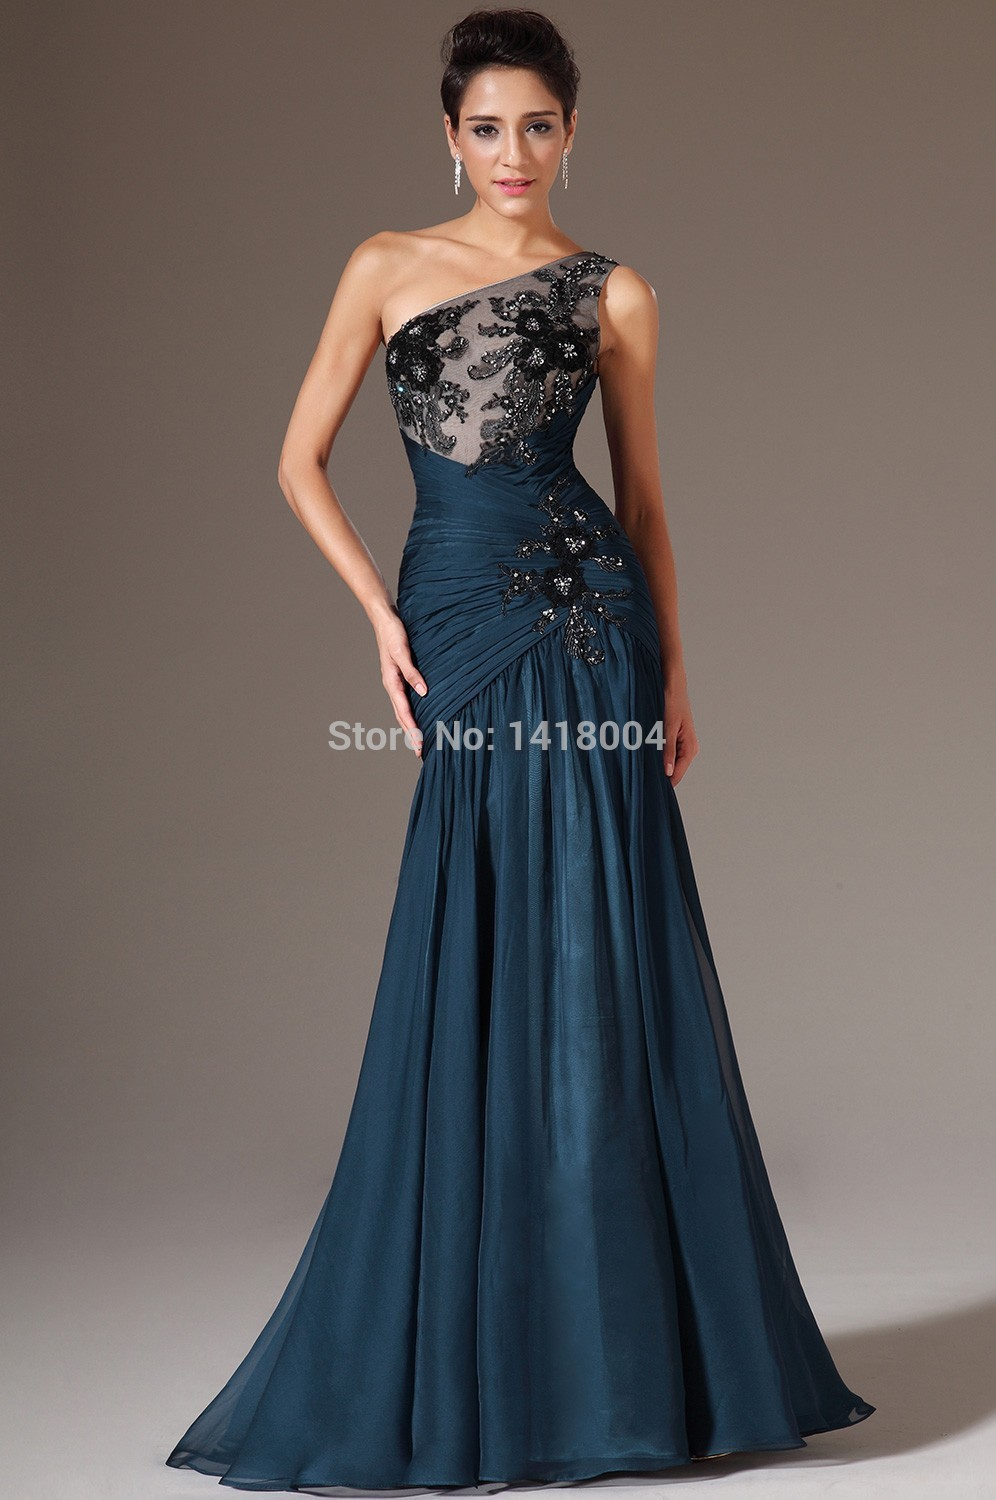 Aliexpress.com : Buy New Arrival Mermaid One Shoulder Prom Gowns ...